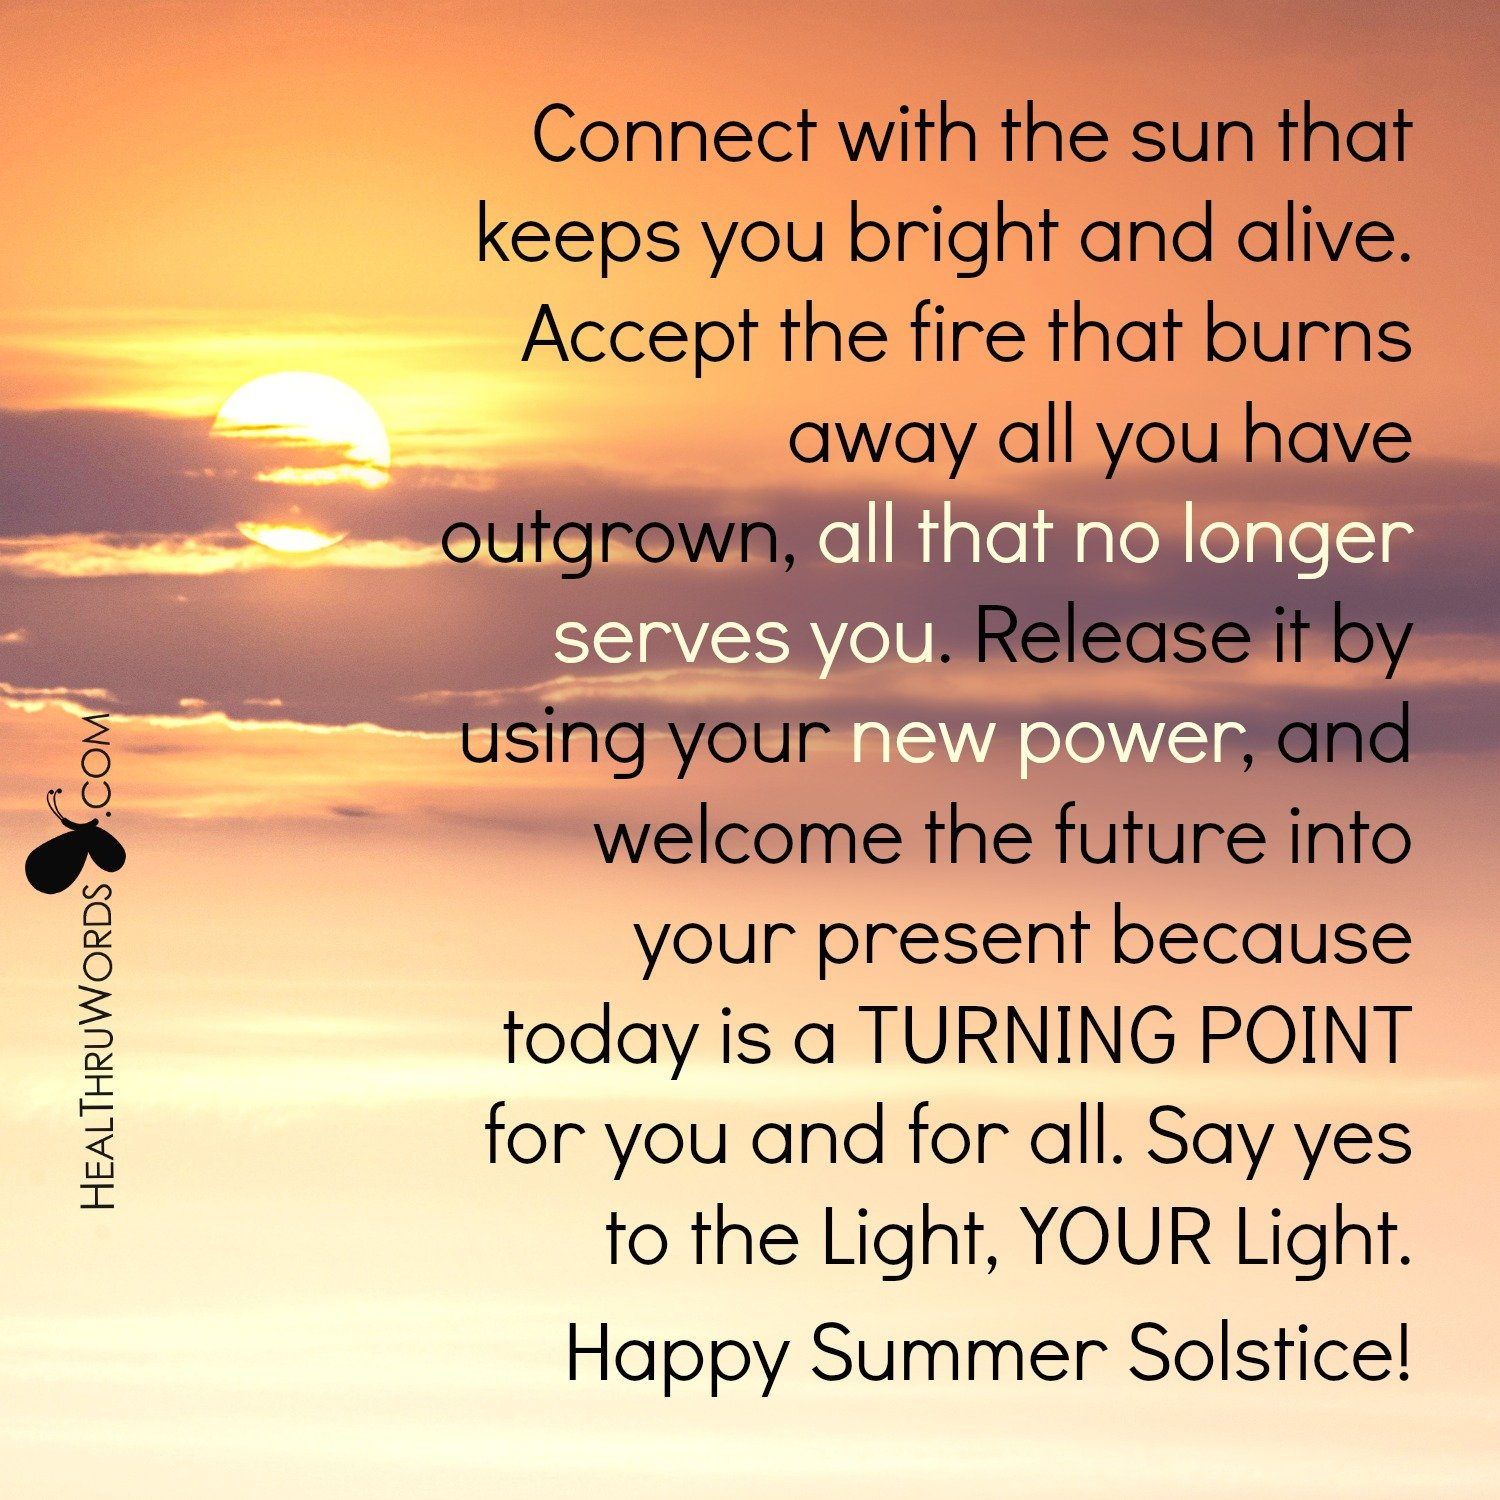 Inspirational Image: During Summer Solstice